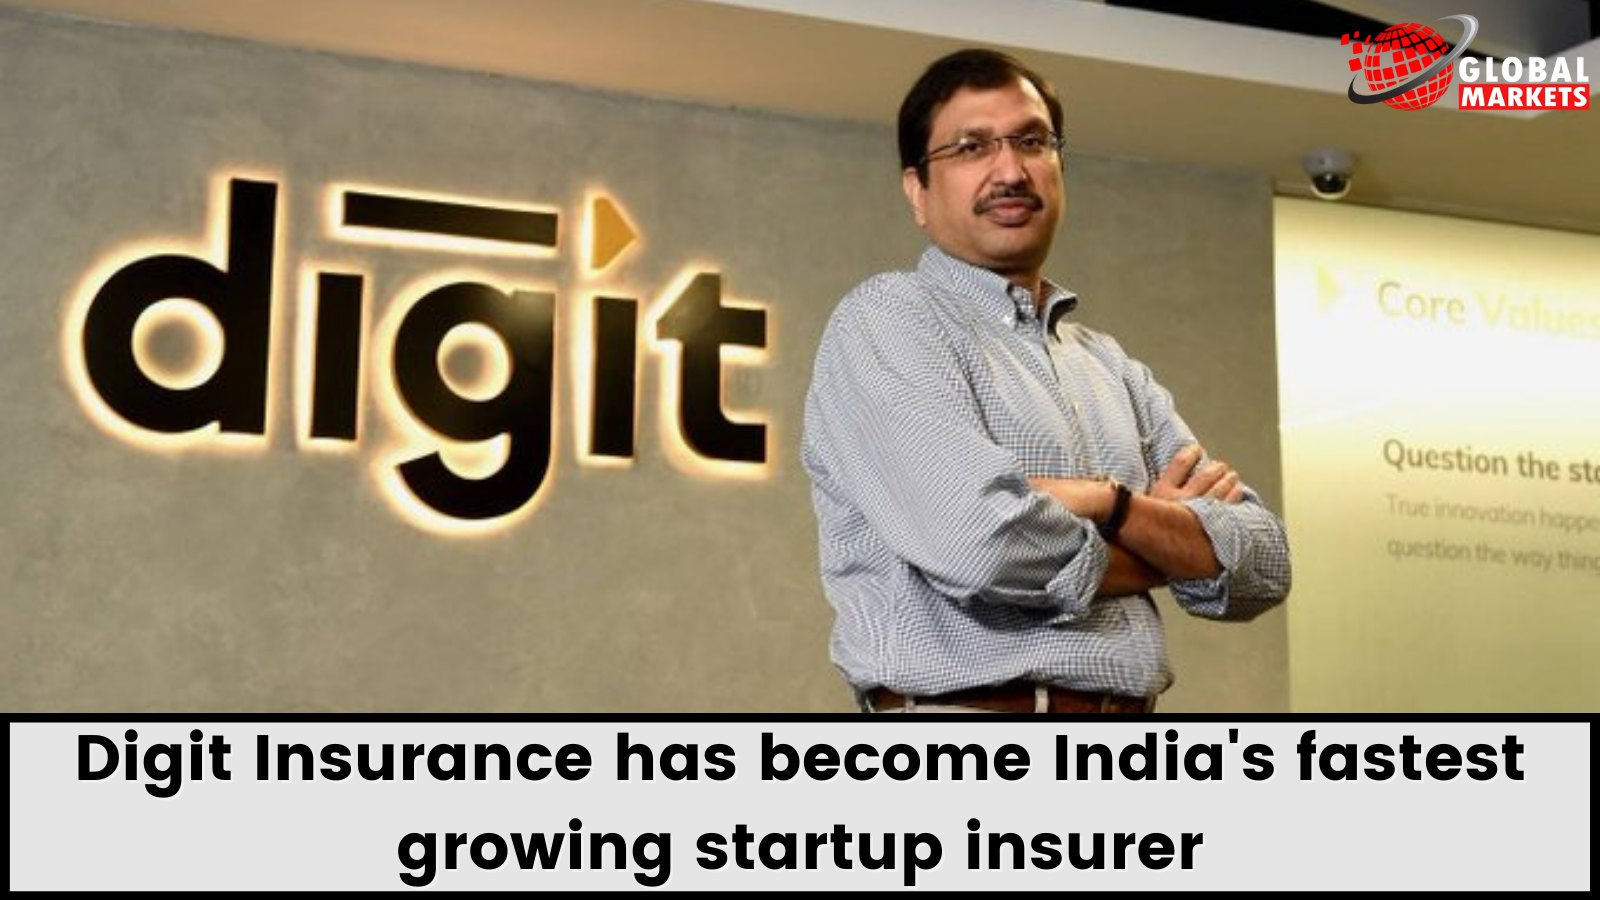 Digit Insurance has become fastest growing startup insurer in India